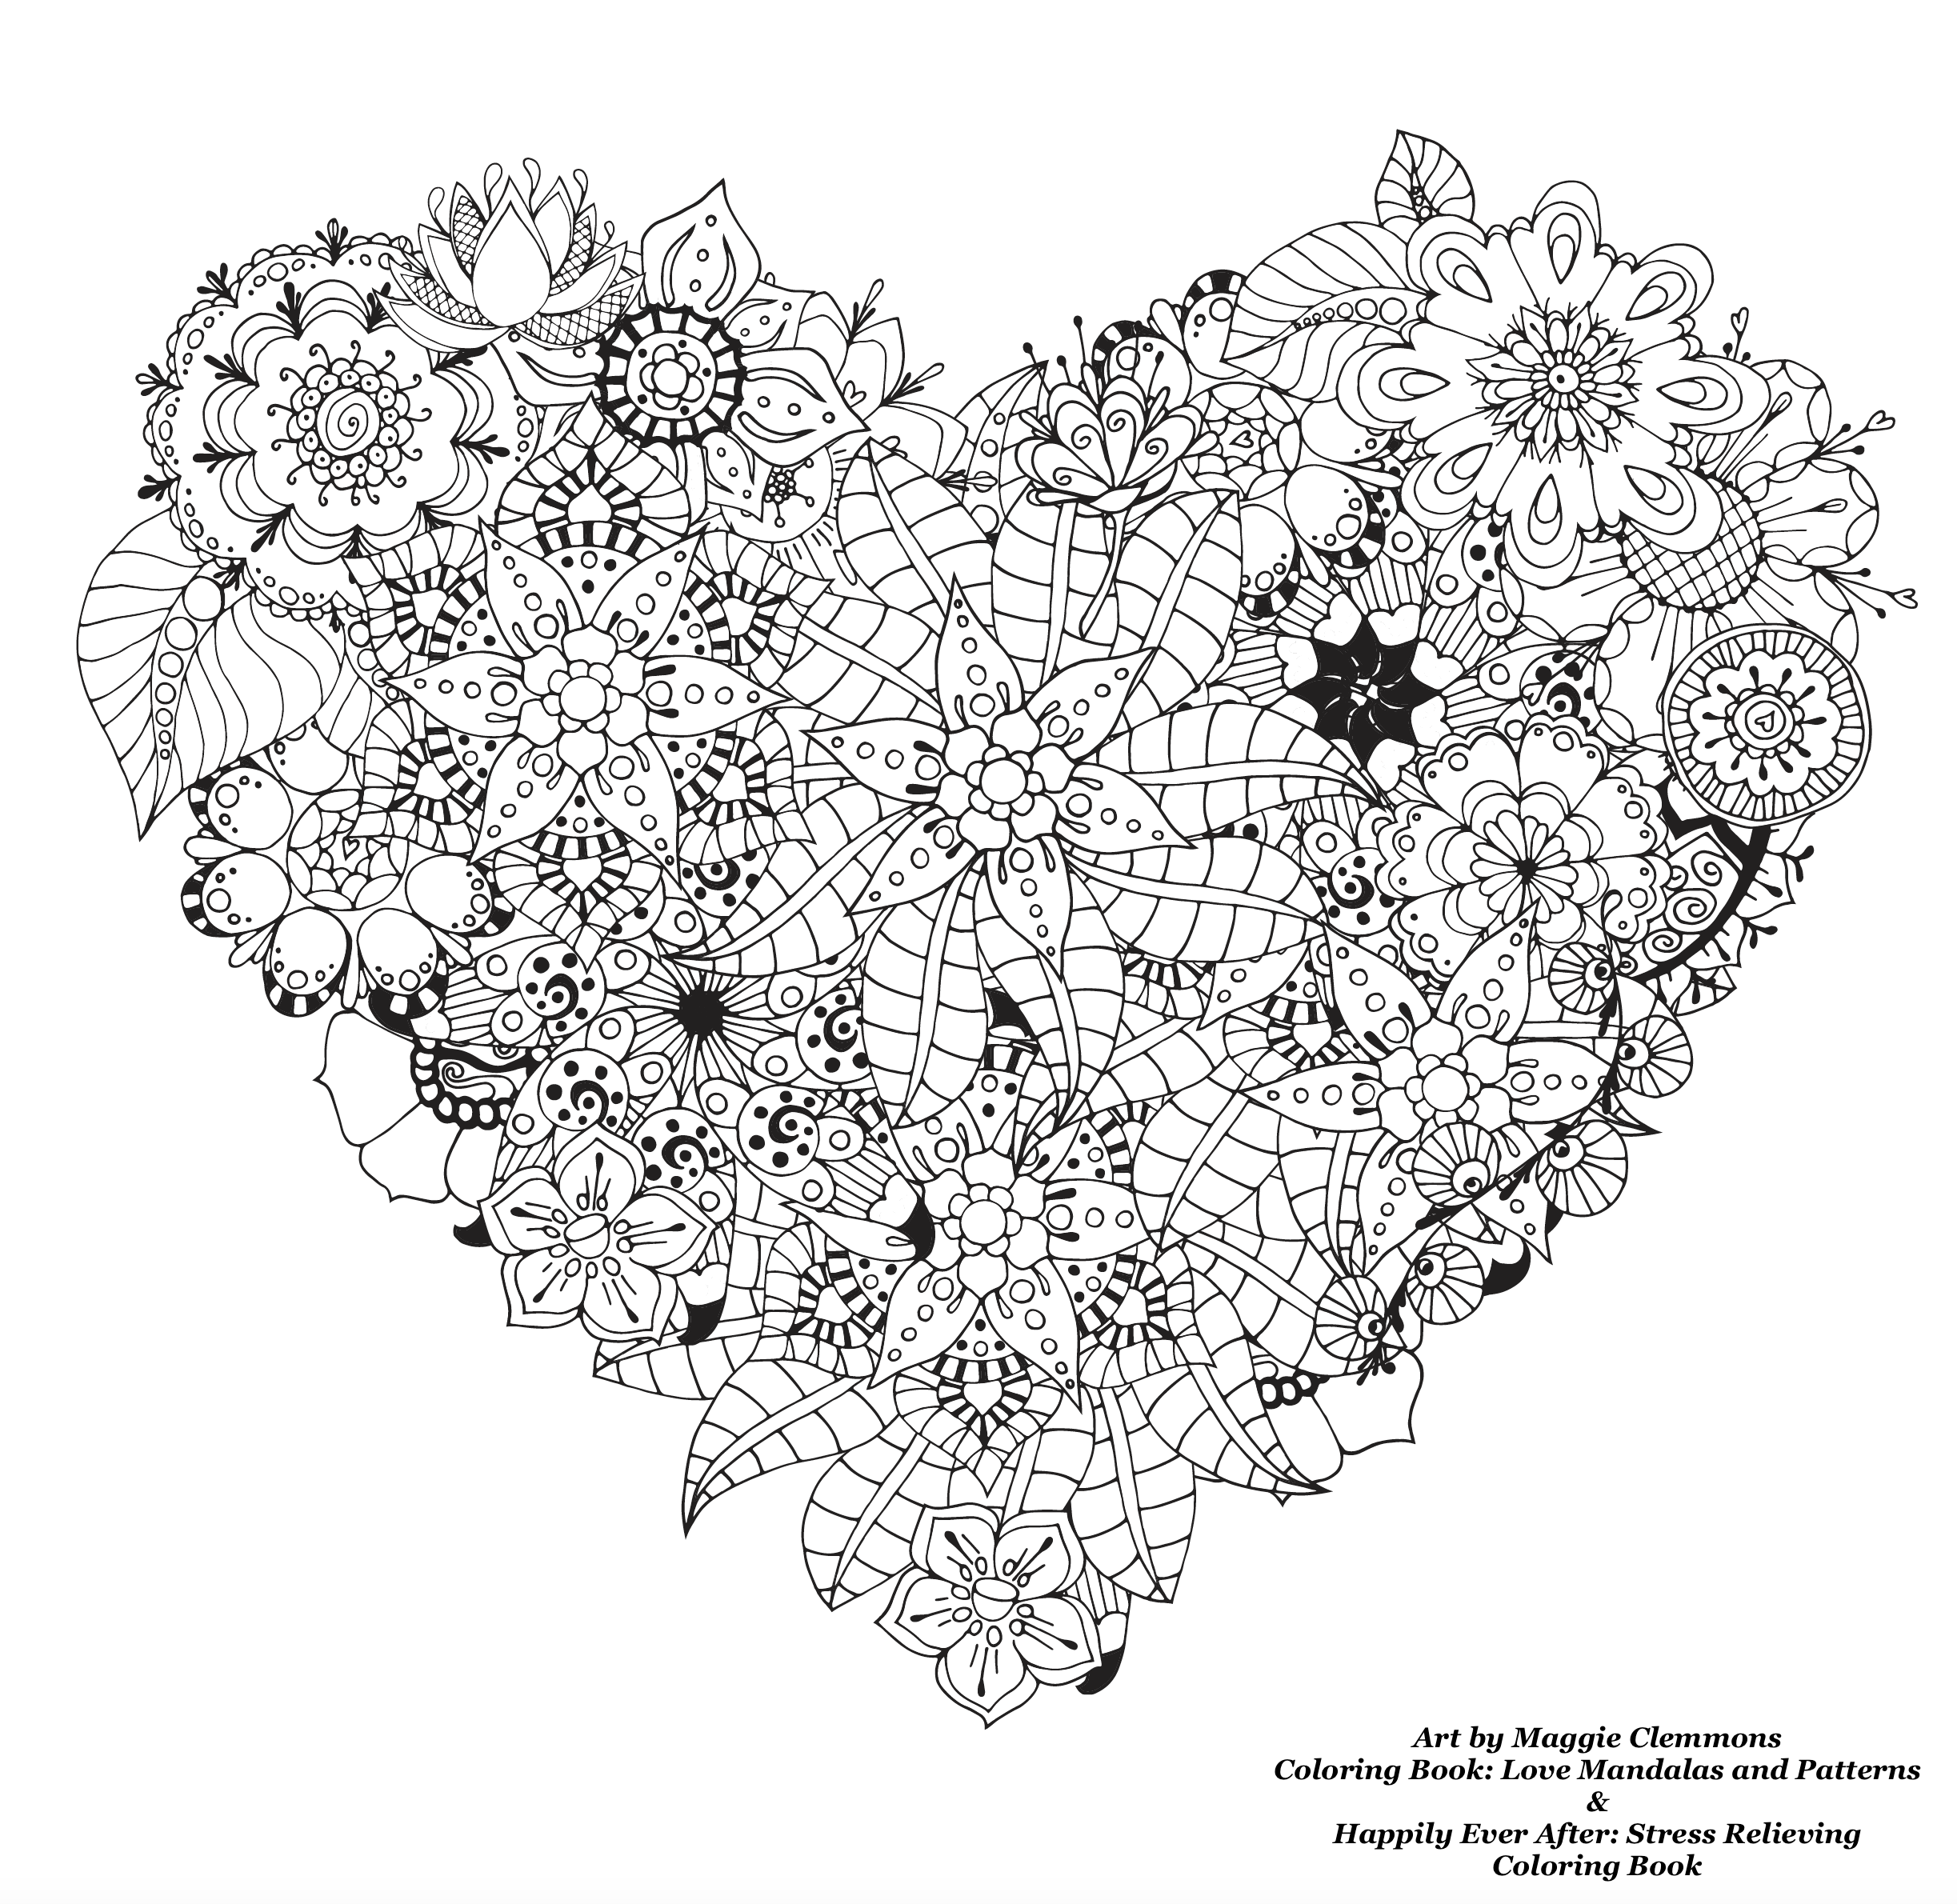 ... Free Coloring Pages From Adult Coloring Worldwide Art By Maggie  Clemmons Coloring Book: Love Mandalas